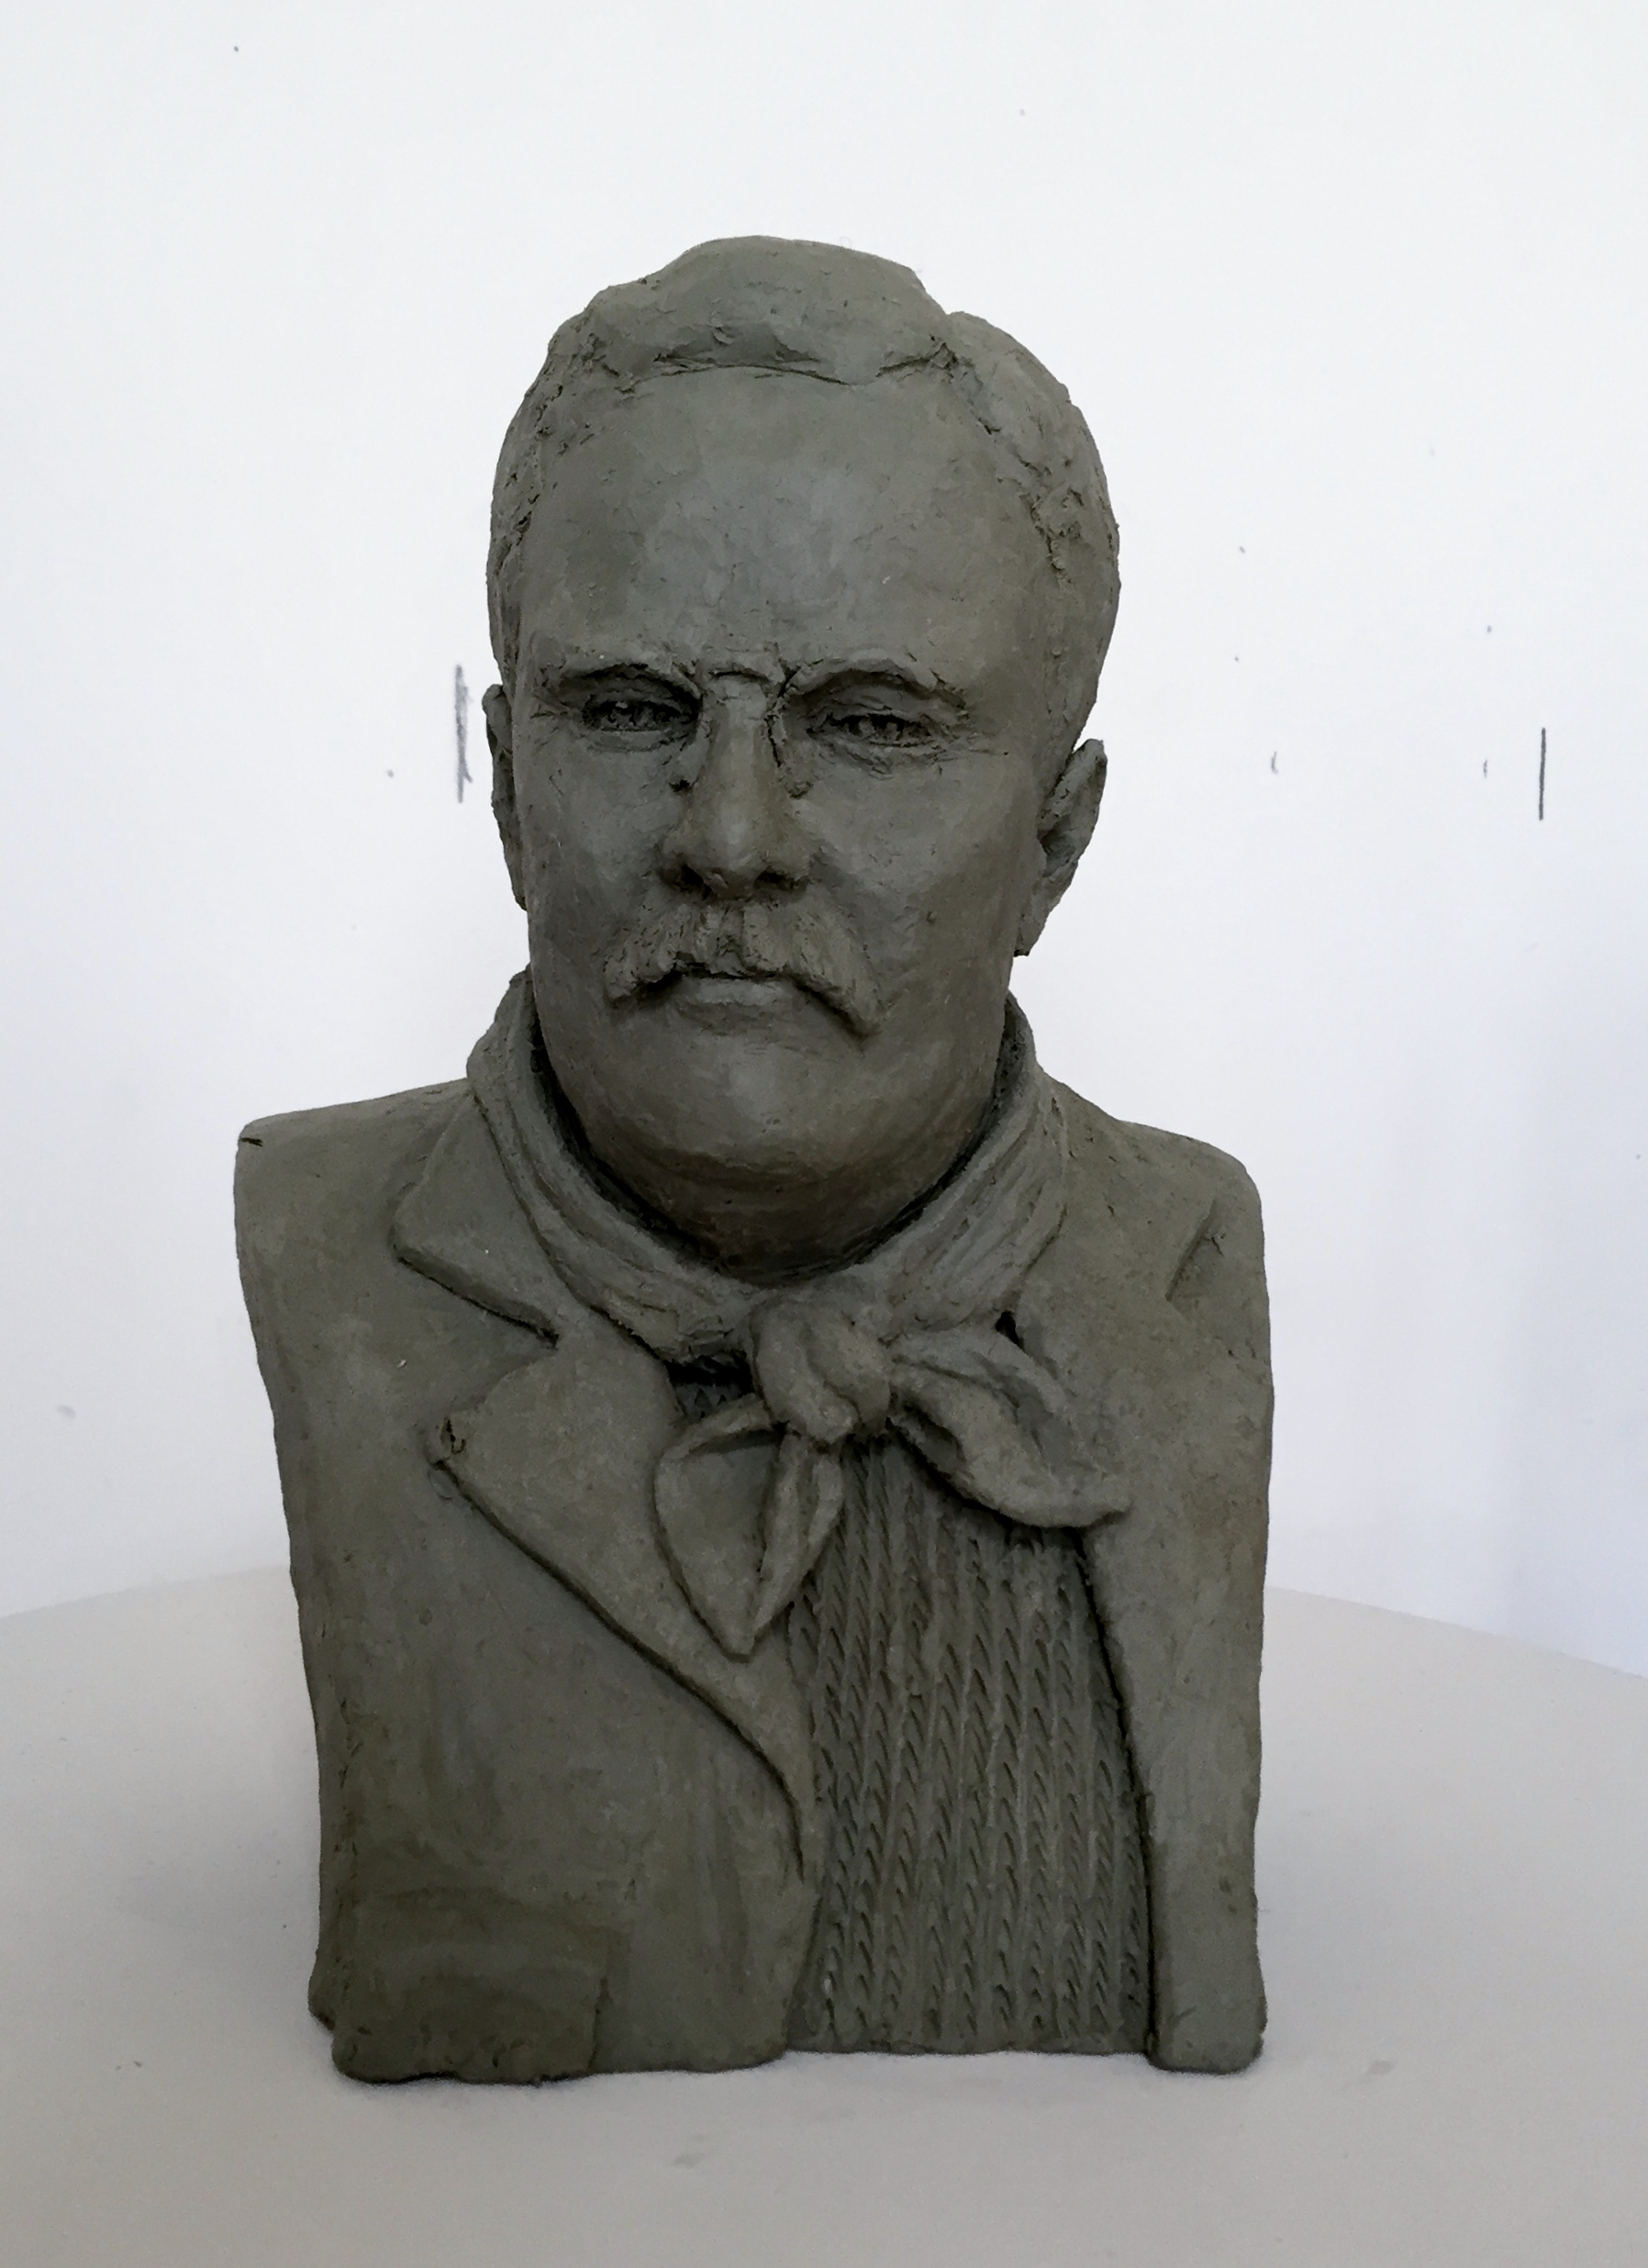 Theodore Roosevelt by Charles Bergen (MG: June 2015)